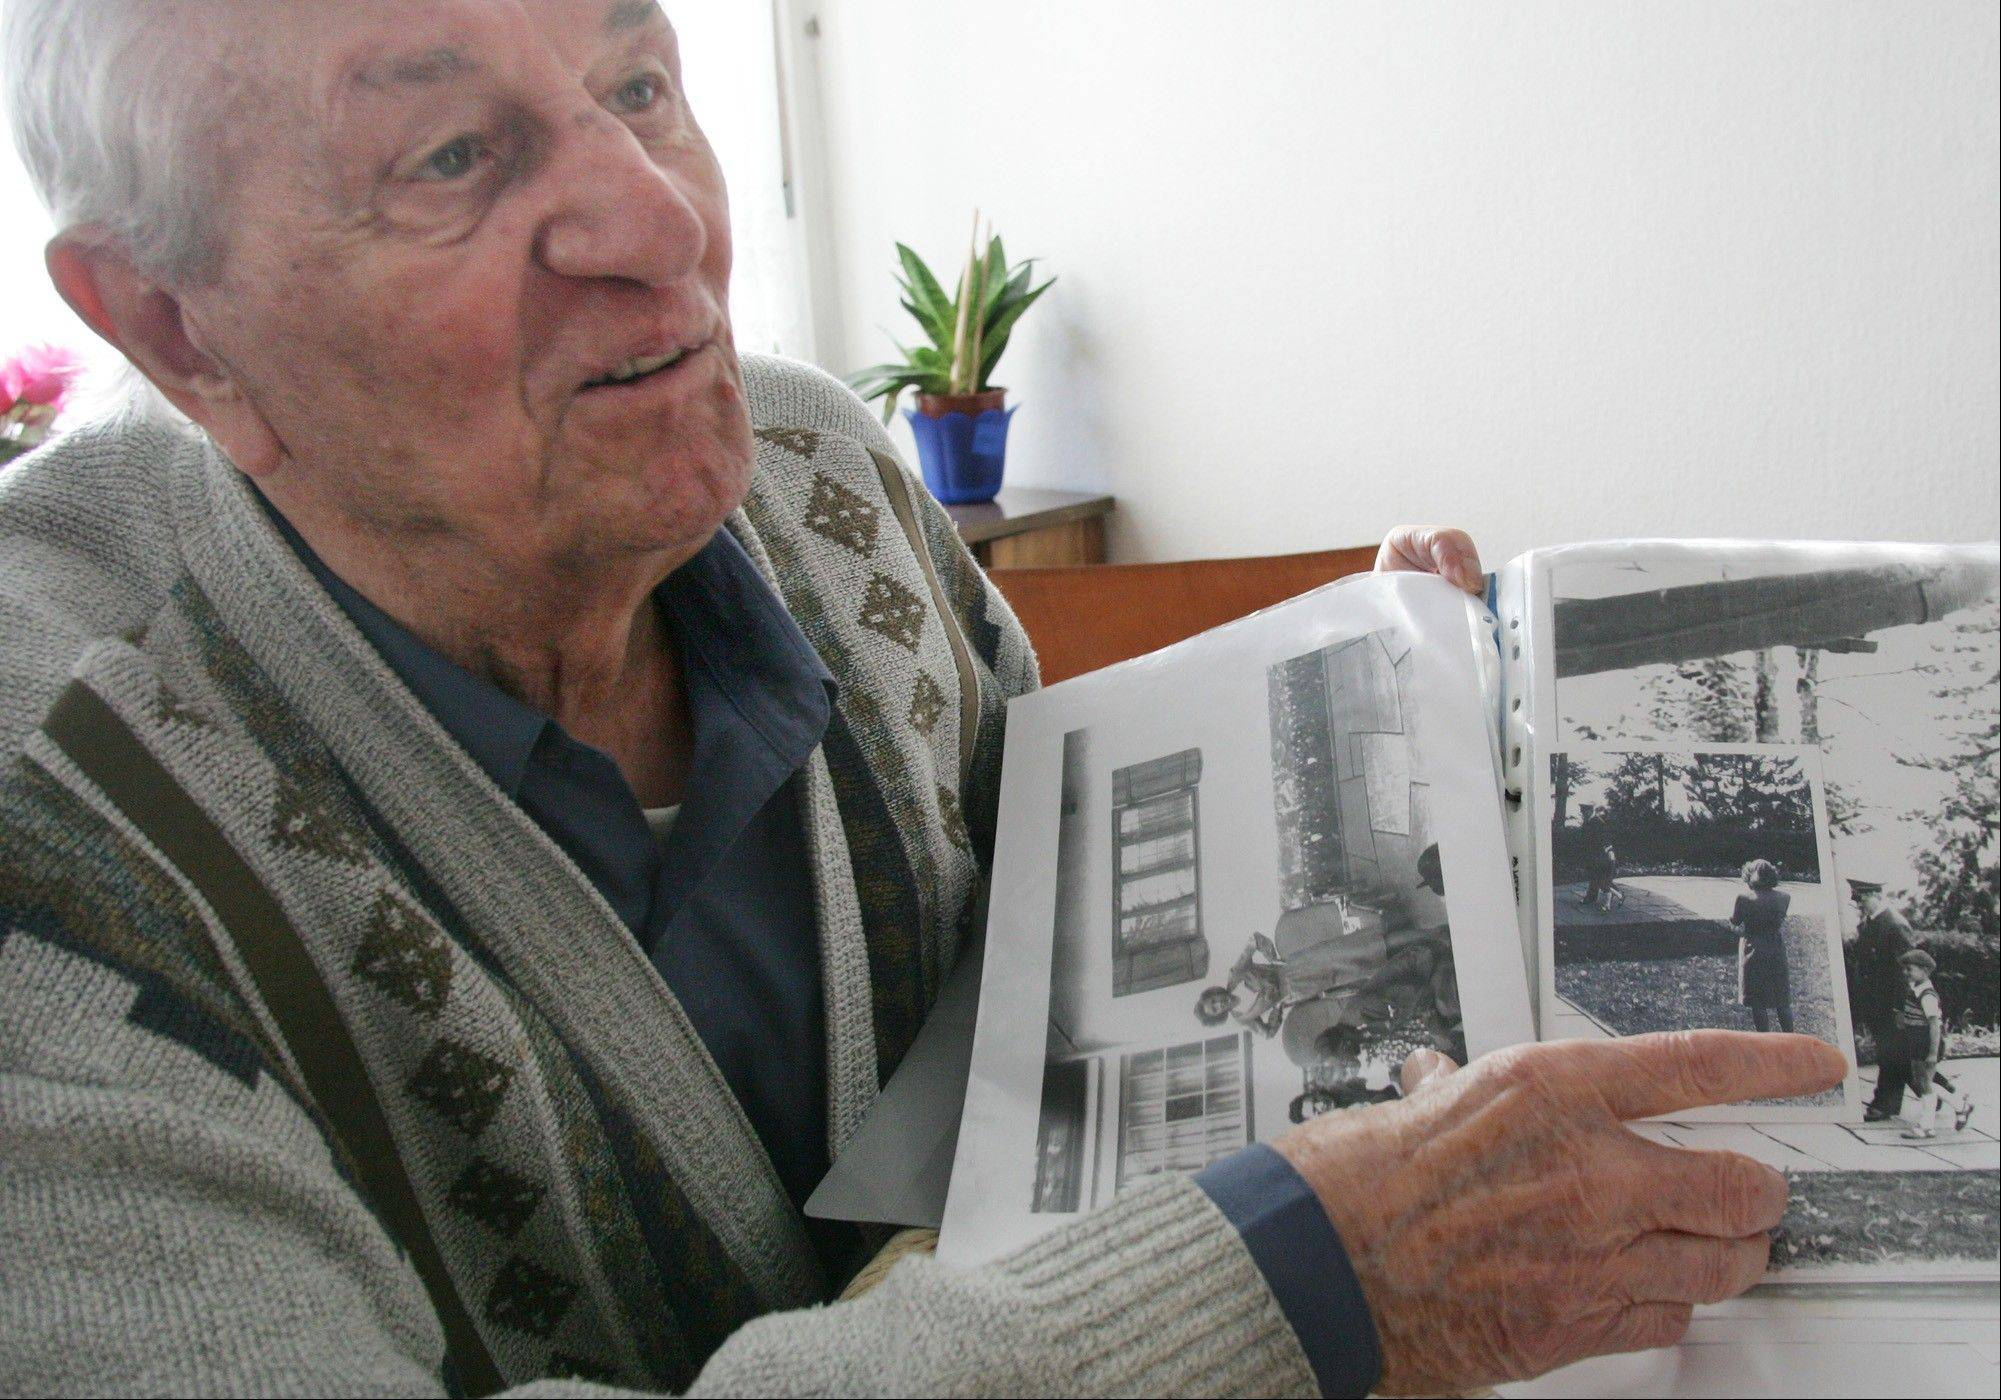 Hitler�s bodyguard Rochus Misch, who was the last remaining witness to the Nazi leader�s final hours in his Berlin bunker, died Thursday, Sept. 5, 2013. He was 96.